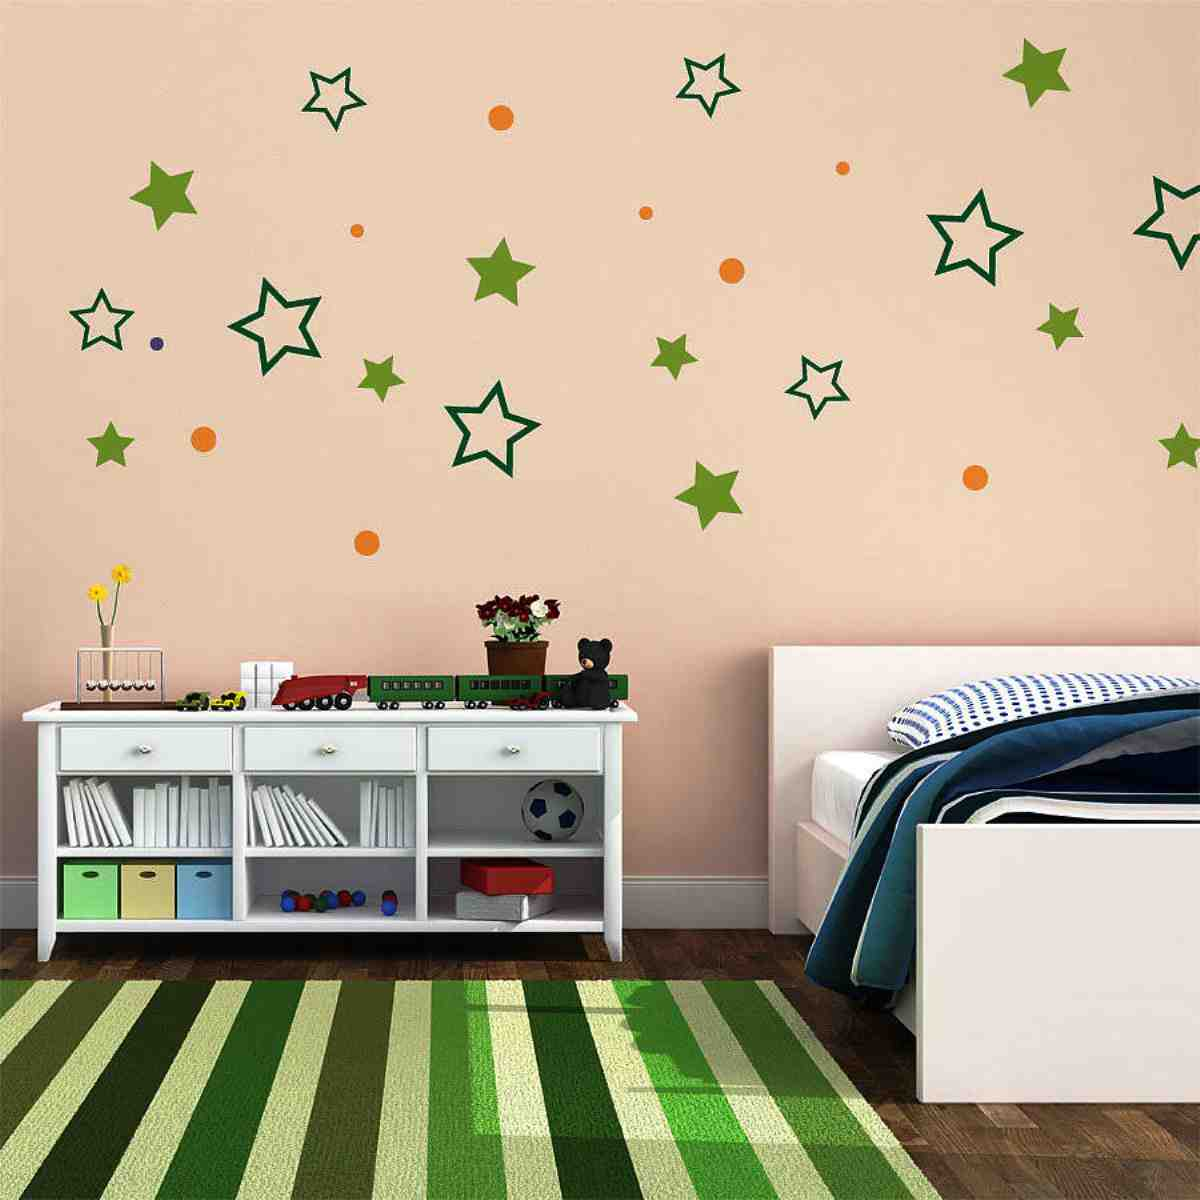 Gallery For gt; Diy Bedroom Wall Decorating Ideas